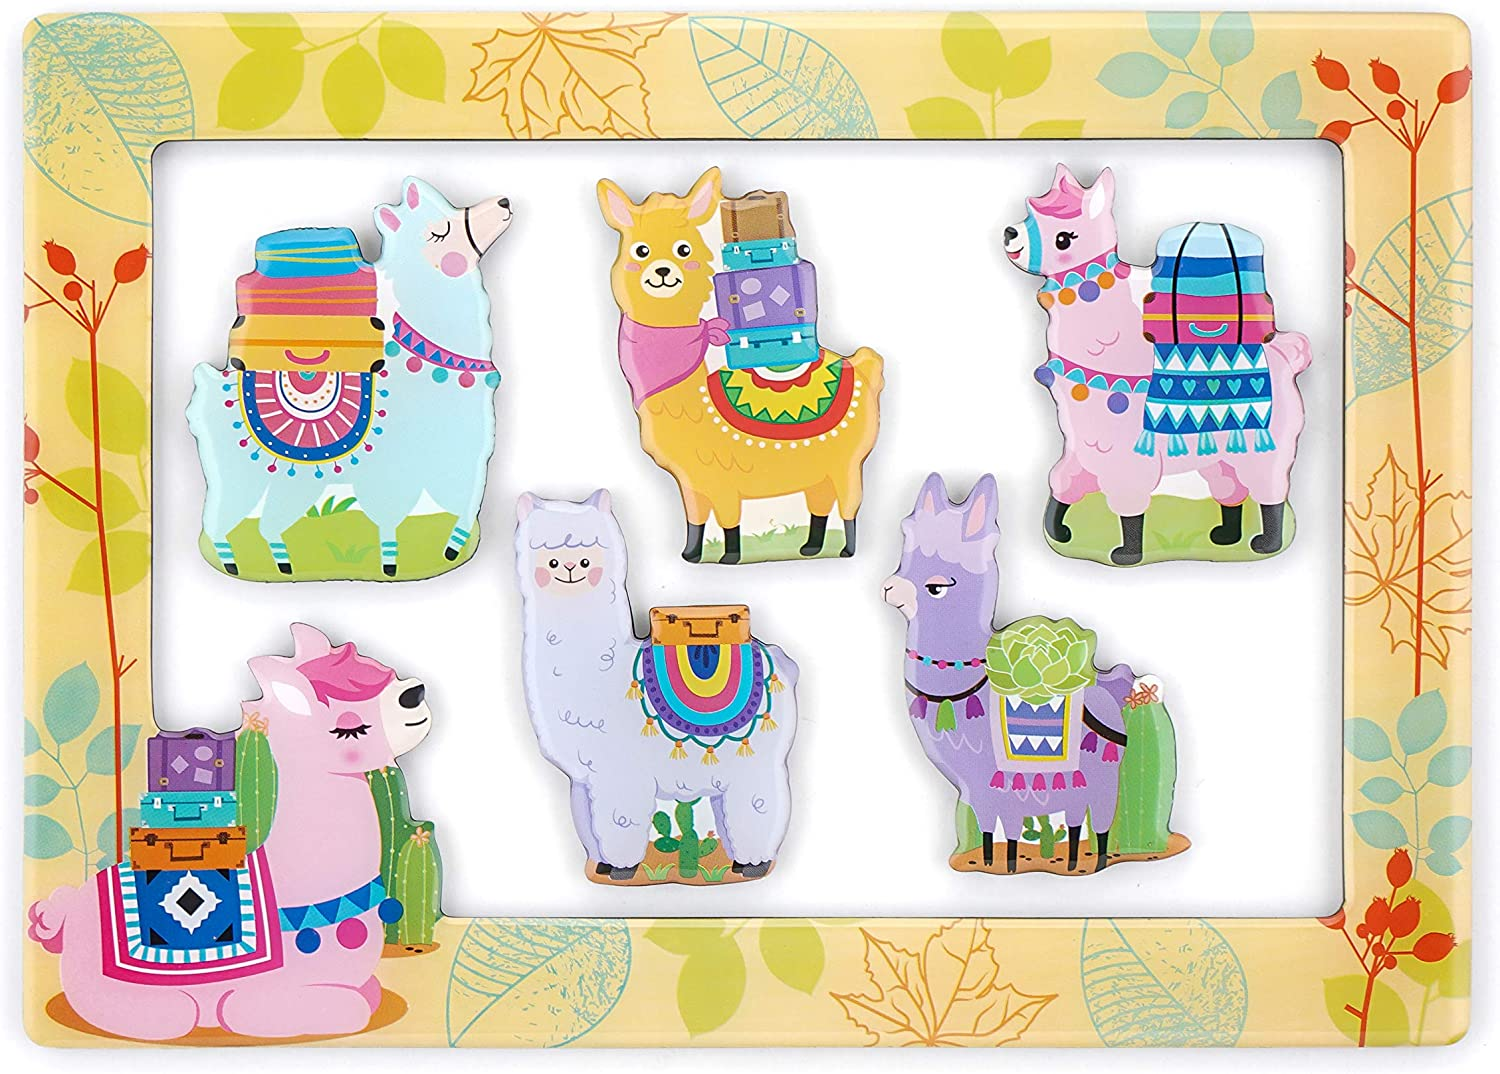 """Morcart 6-in-1 Fridge Magnets and 4""""x 6"""" Magnetic Photo Frame Set 5pcs Alpaca Refrigerator Magnets, Best Gift Choice (Alpaca Magnets)"""